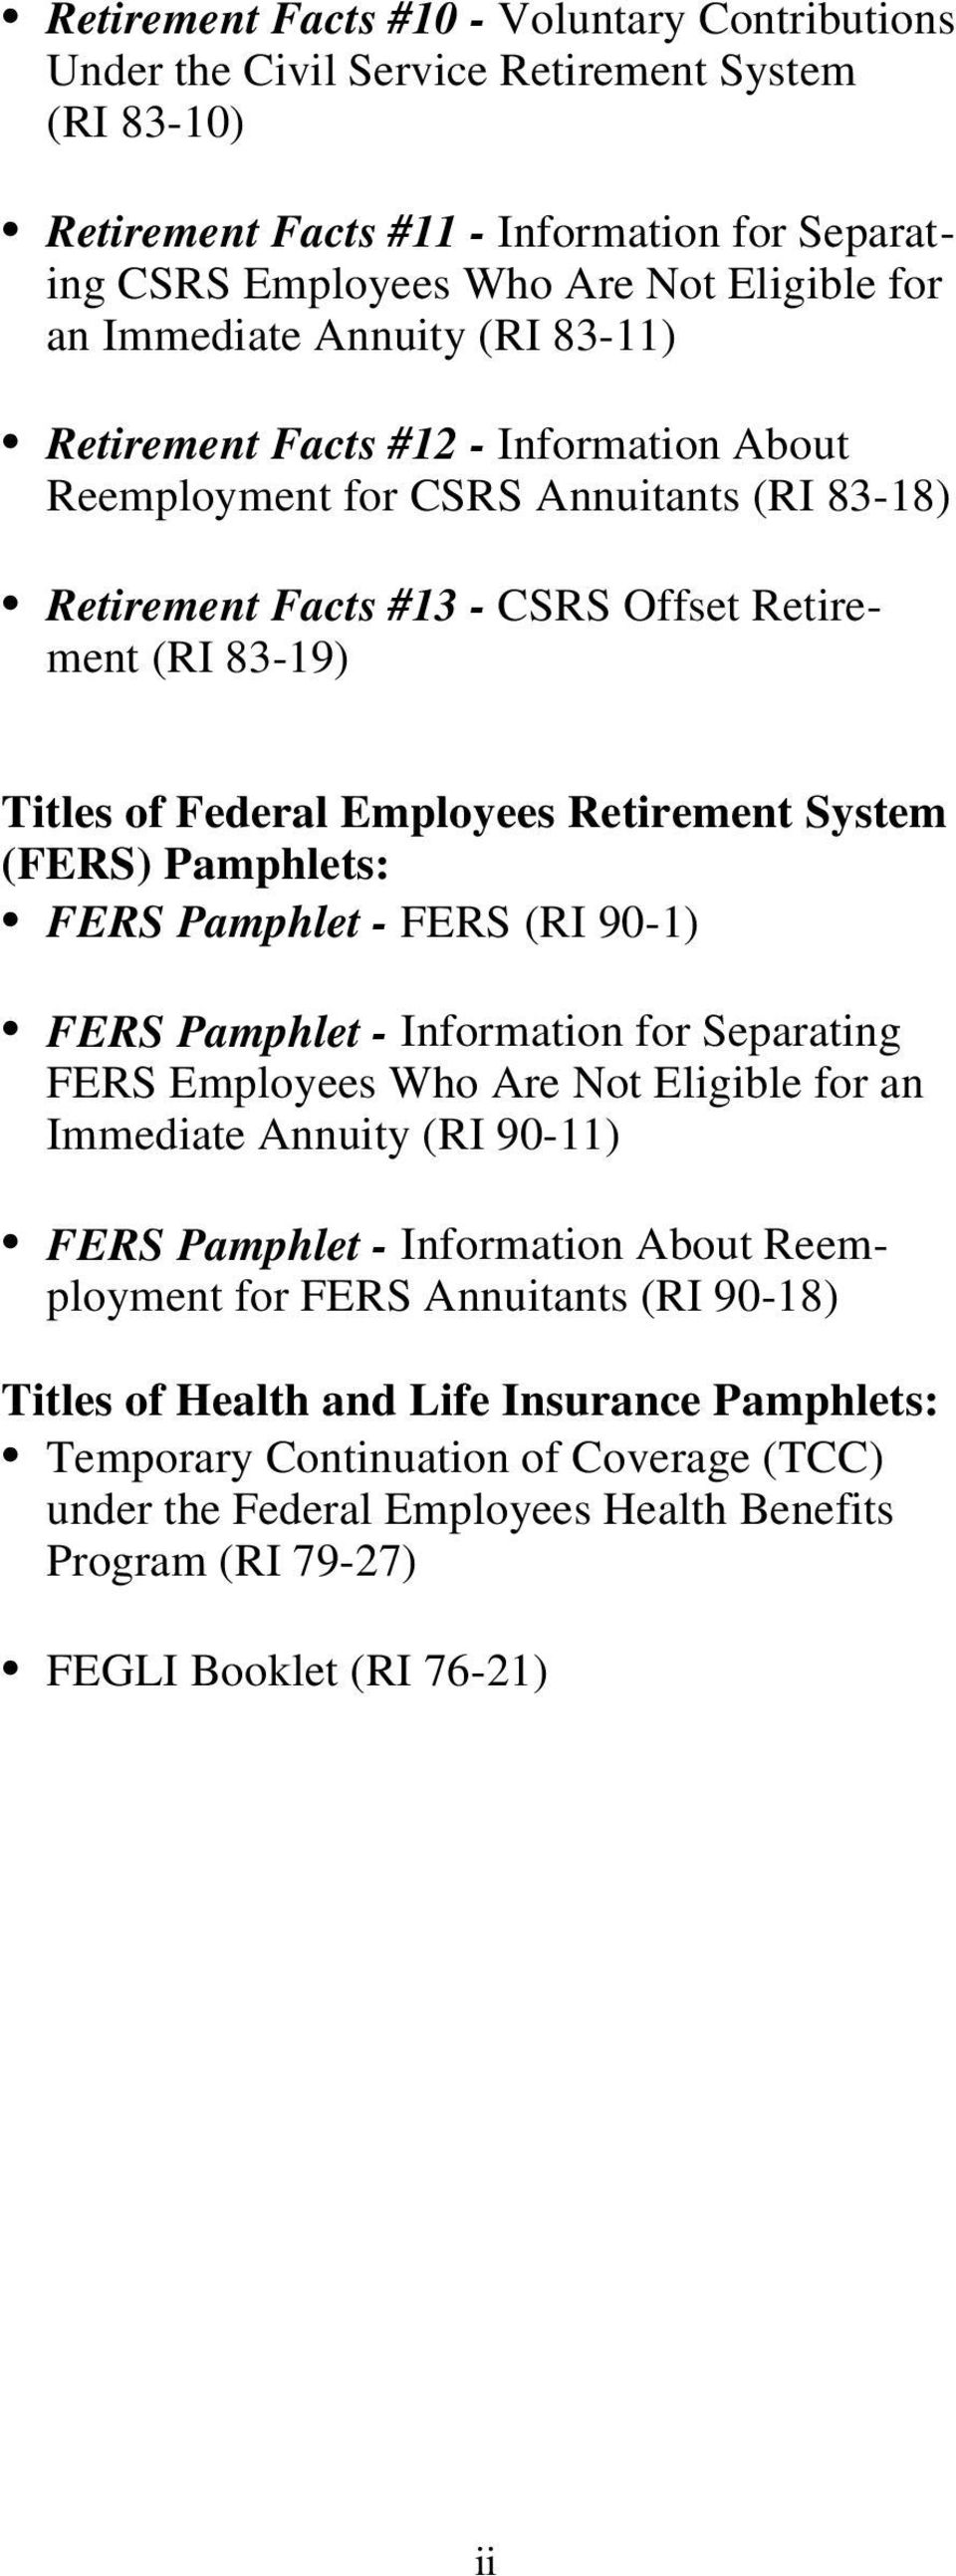 Retirement System (FERS) Pamphlets: FERS Pamphlet - FERS (RI 90-1) FERS Pamphlet - Information for Separating FERS Employees Who Are Not Eligible for an Immediate Annuity (RI 90-11) FERS Pamphlet -